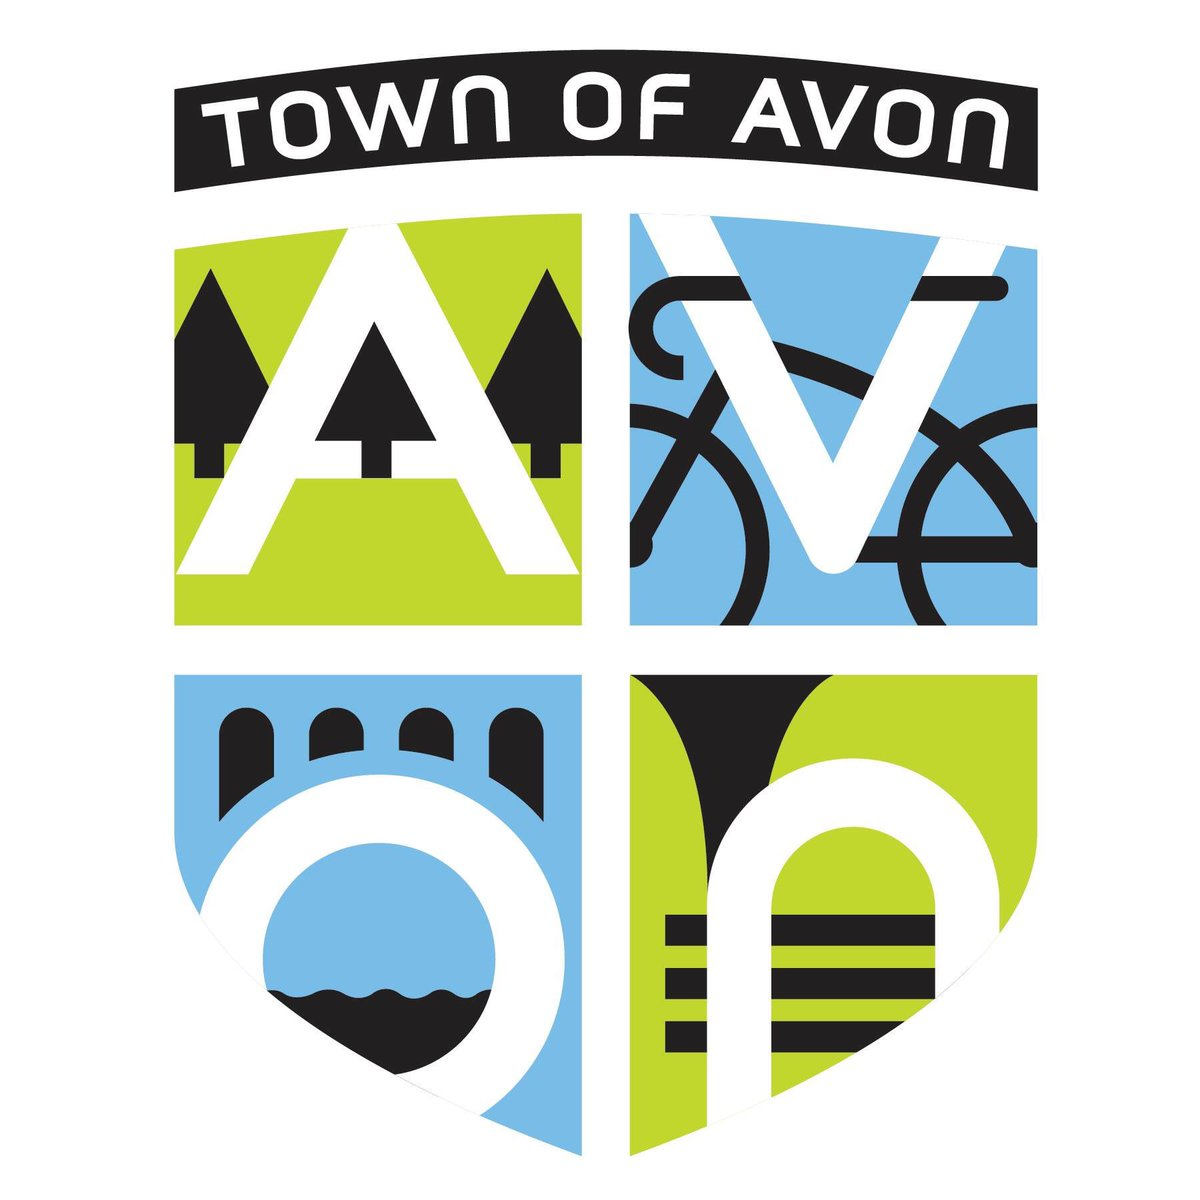 Longtime Avon town manager asked to resign; search underway for new leader.  https://t.co/nP2DixXP9t  @TownofAvonIN #TownManager #Search #AvonIN #inHendricks https://t.co/7UKHrV2ul9